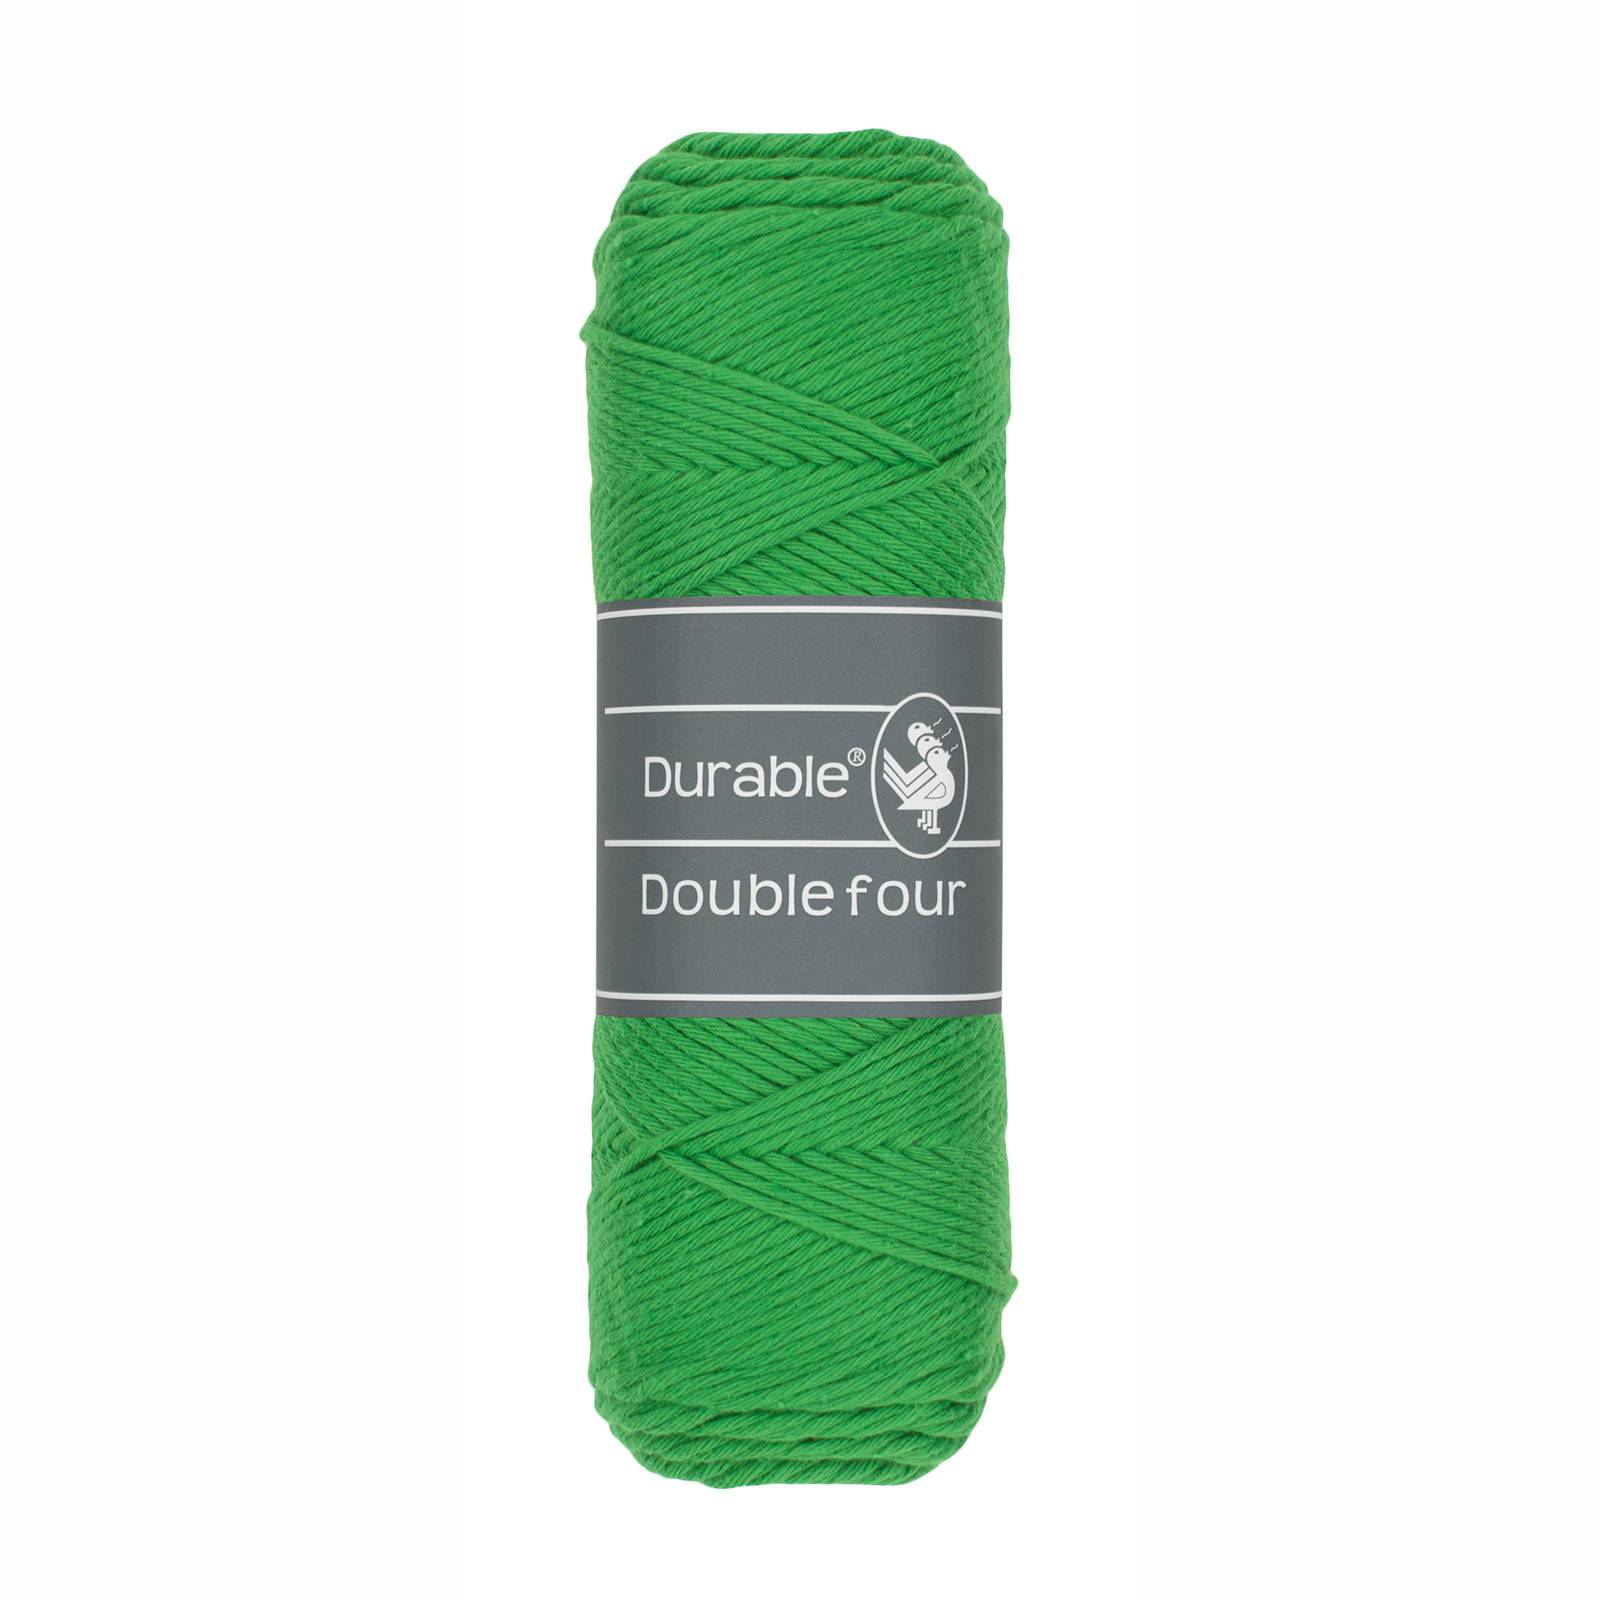 Durable Double Four – 2147 Green